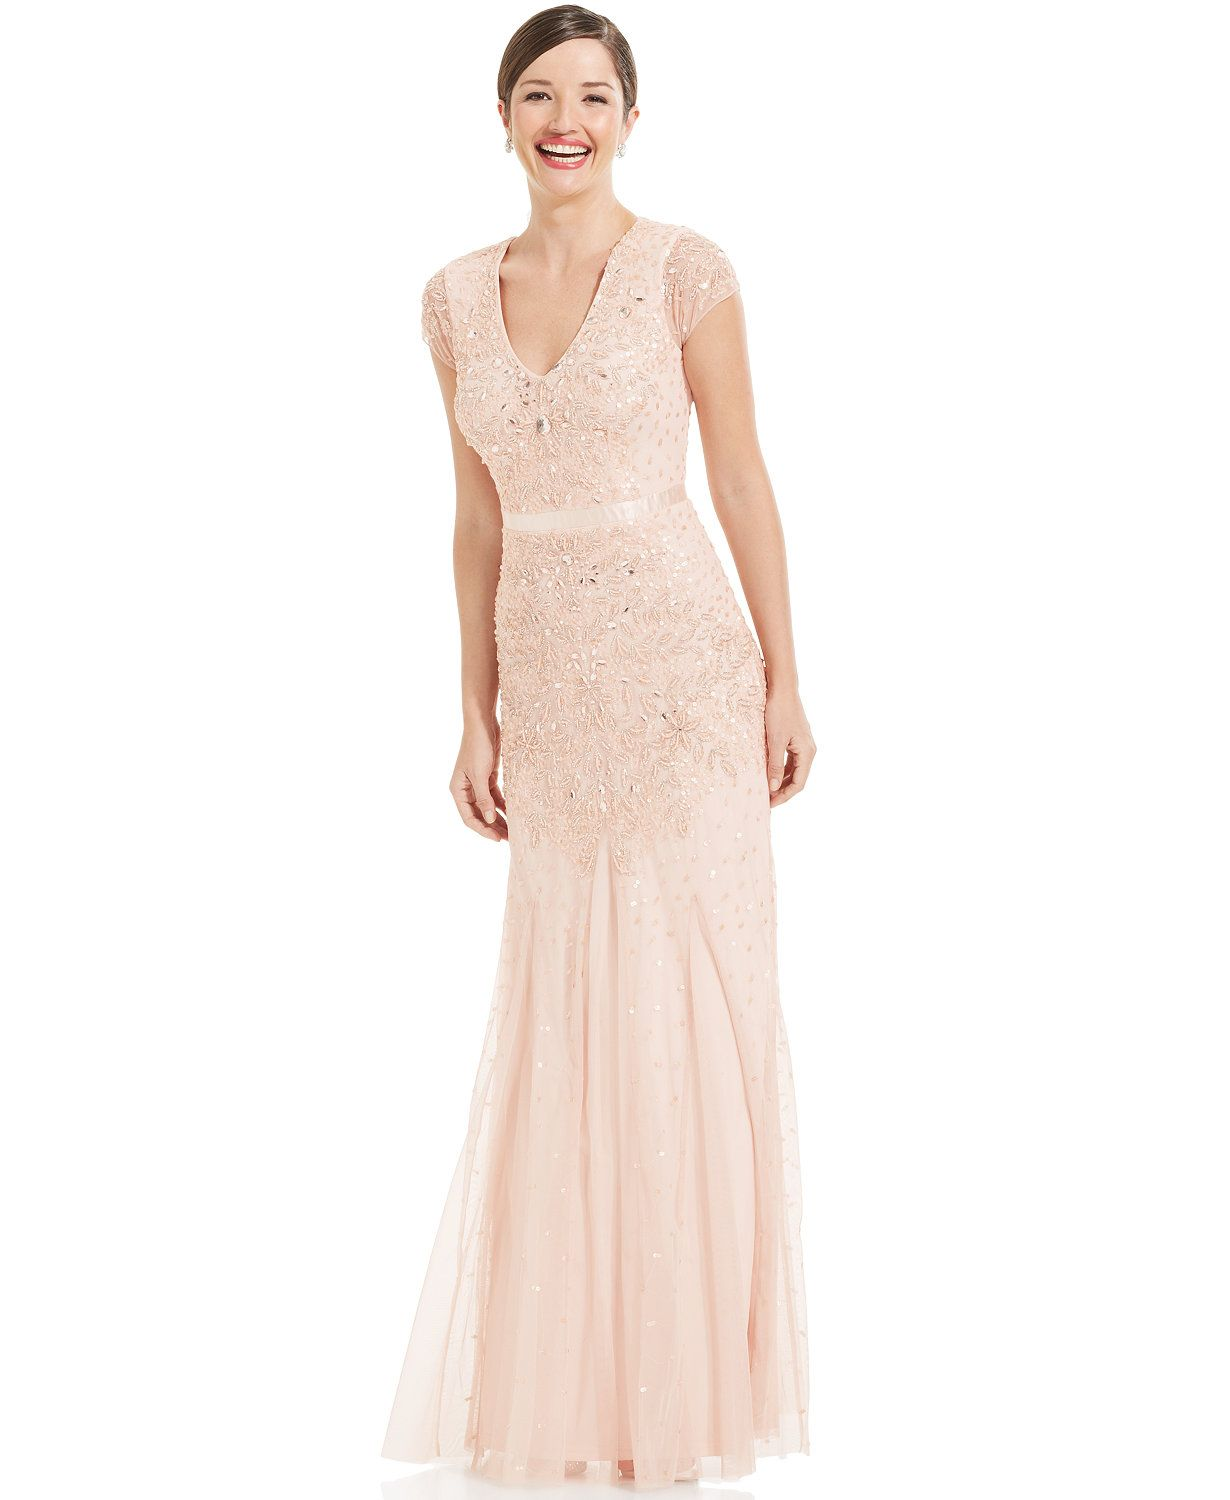 299 adrianna papell cap sleeve embellished gown macys 299 adrianna papell cap sleeve embellished gown macys ombrellifo Images